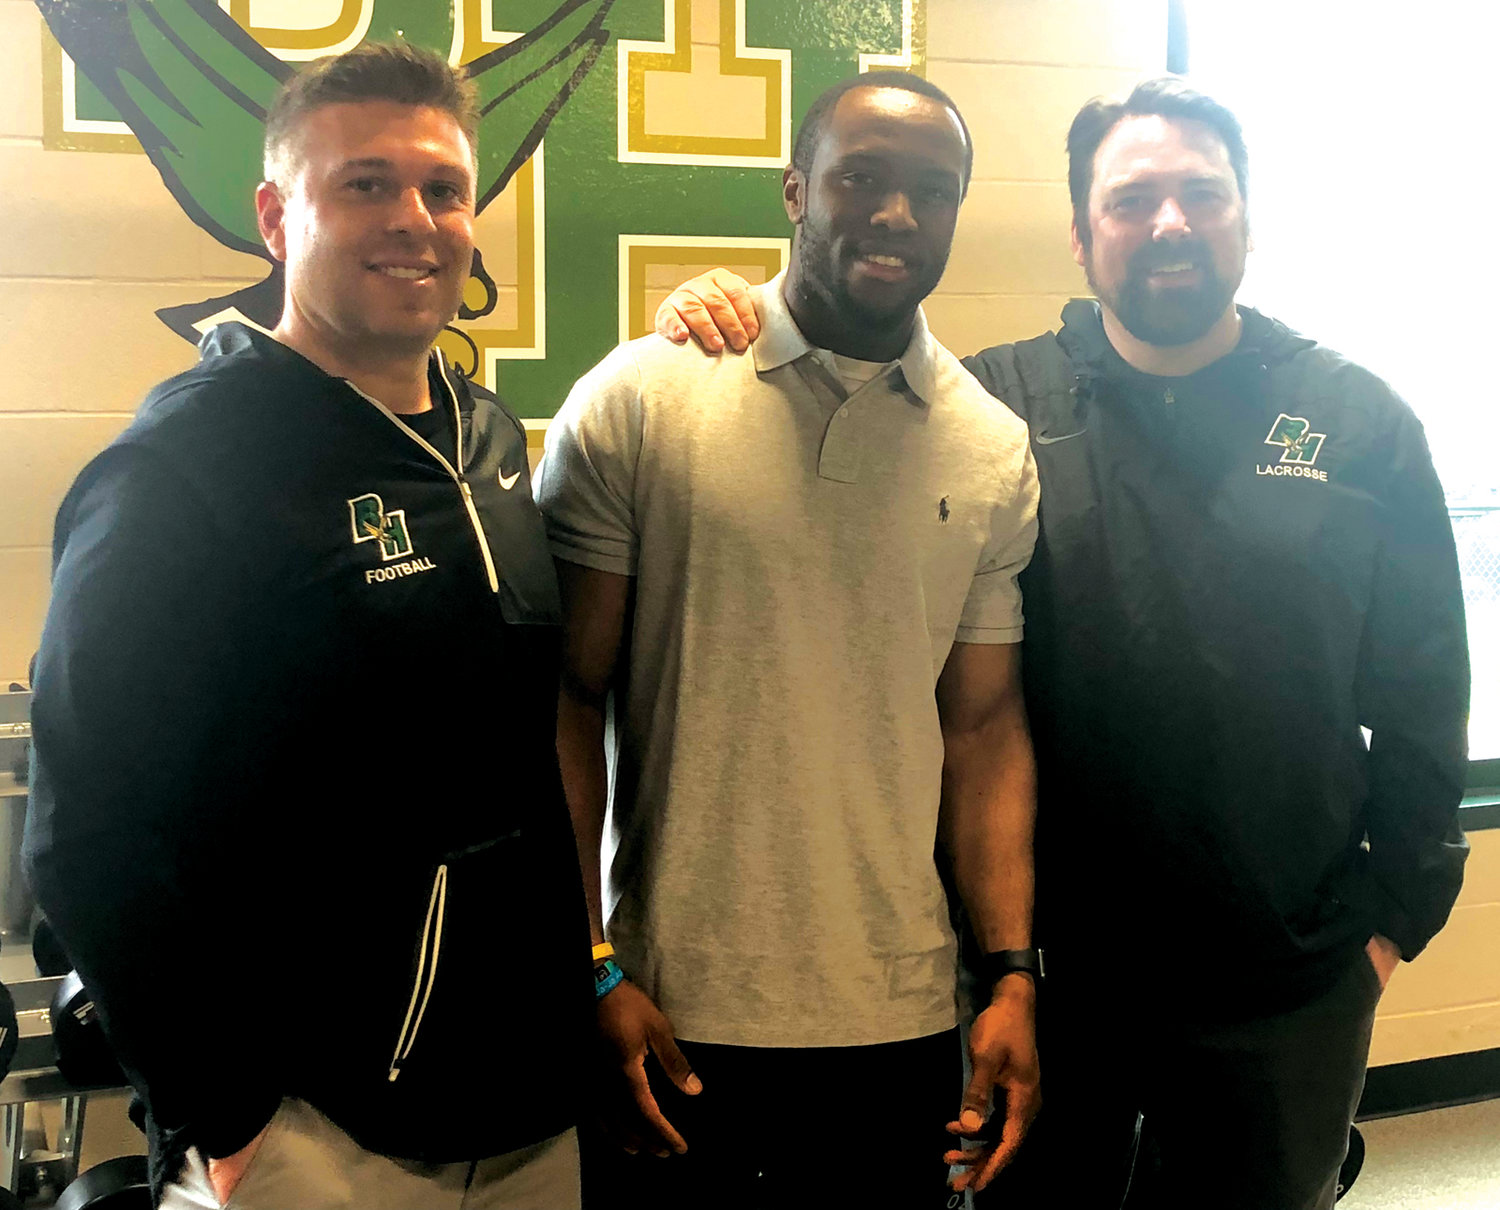 ARIZONA BOUND: Lee Moses (center) visits members of the Bishop Hendricken coaching staff prior to his departure to Arizona for NFL rookie minicamp this weekend.